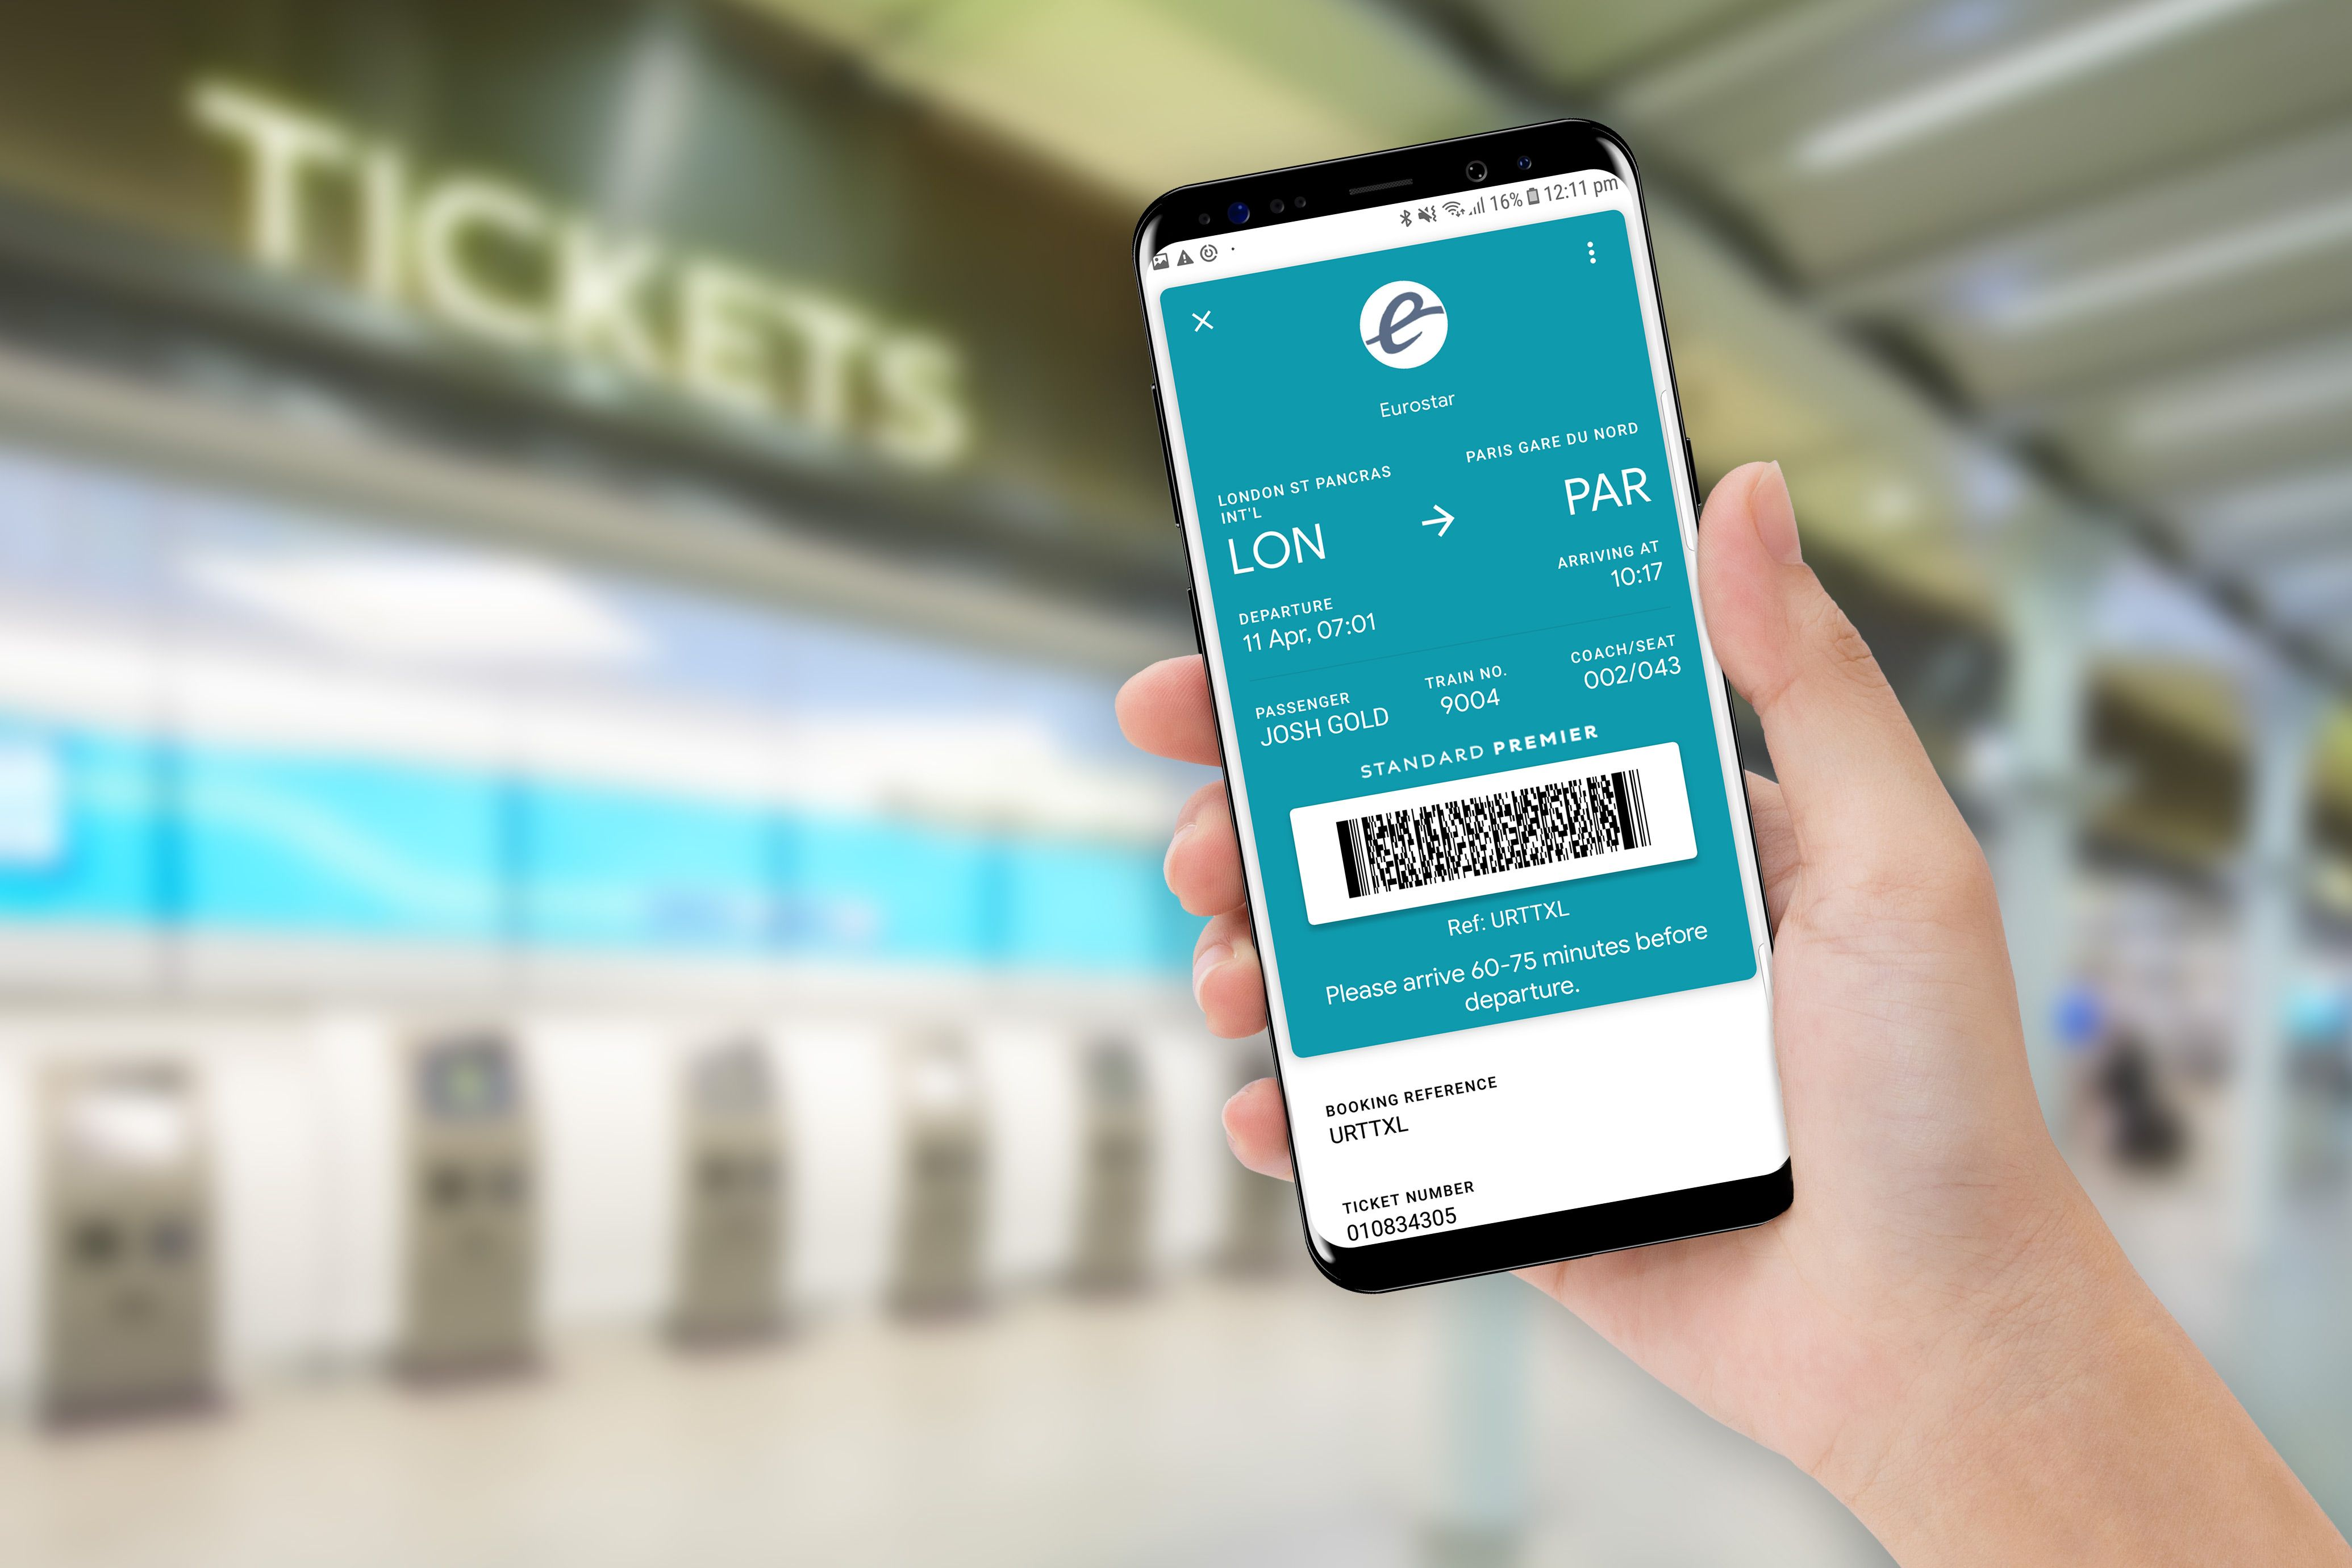 Google Pay can now be used to save Eurostar train tickets